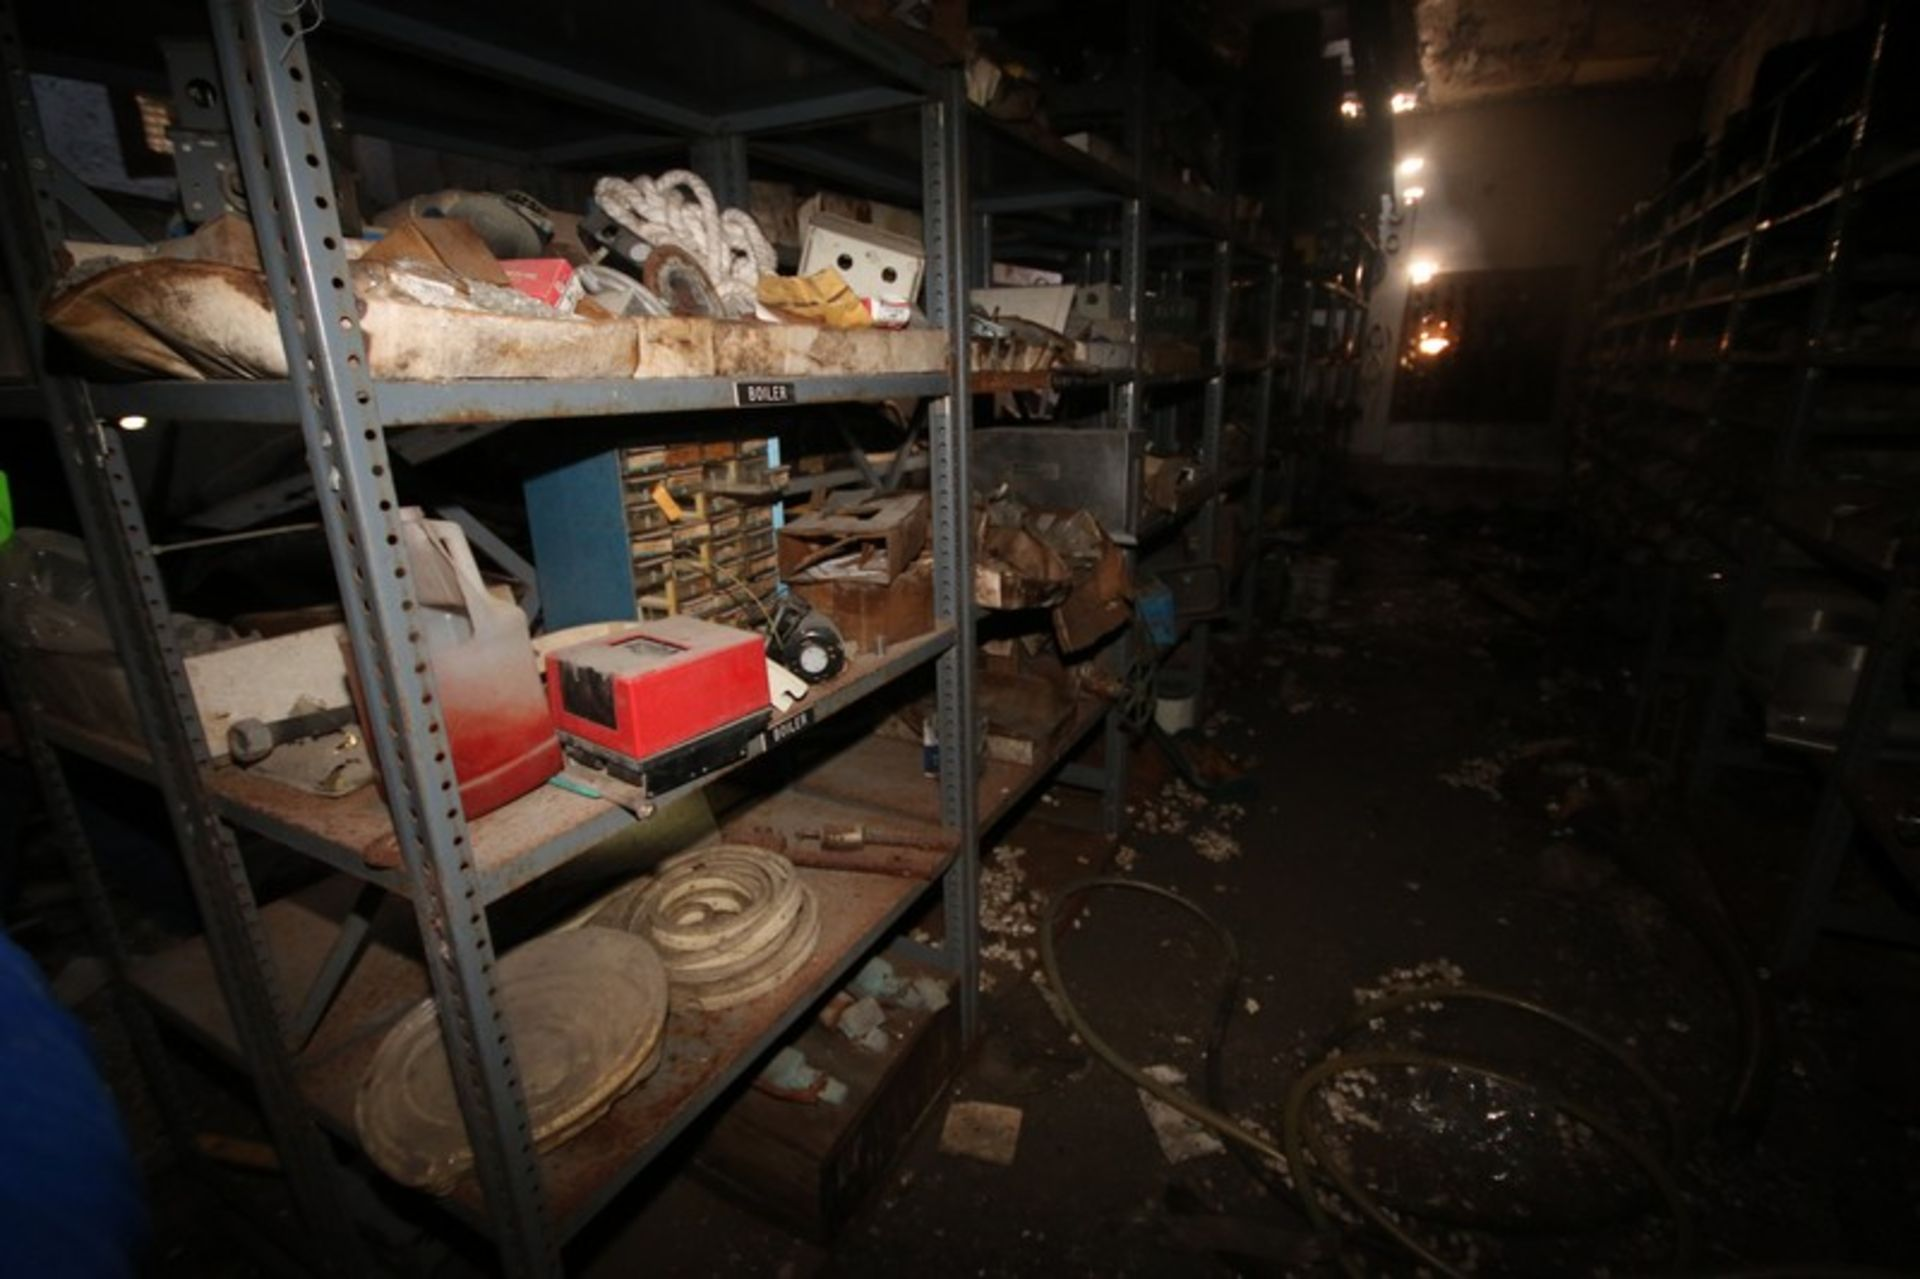 Contents of Parts Room, Includes Bearings, Stainless Steel Pipe, Motors, Belts, Electrical Wire, - Image 8 of 22